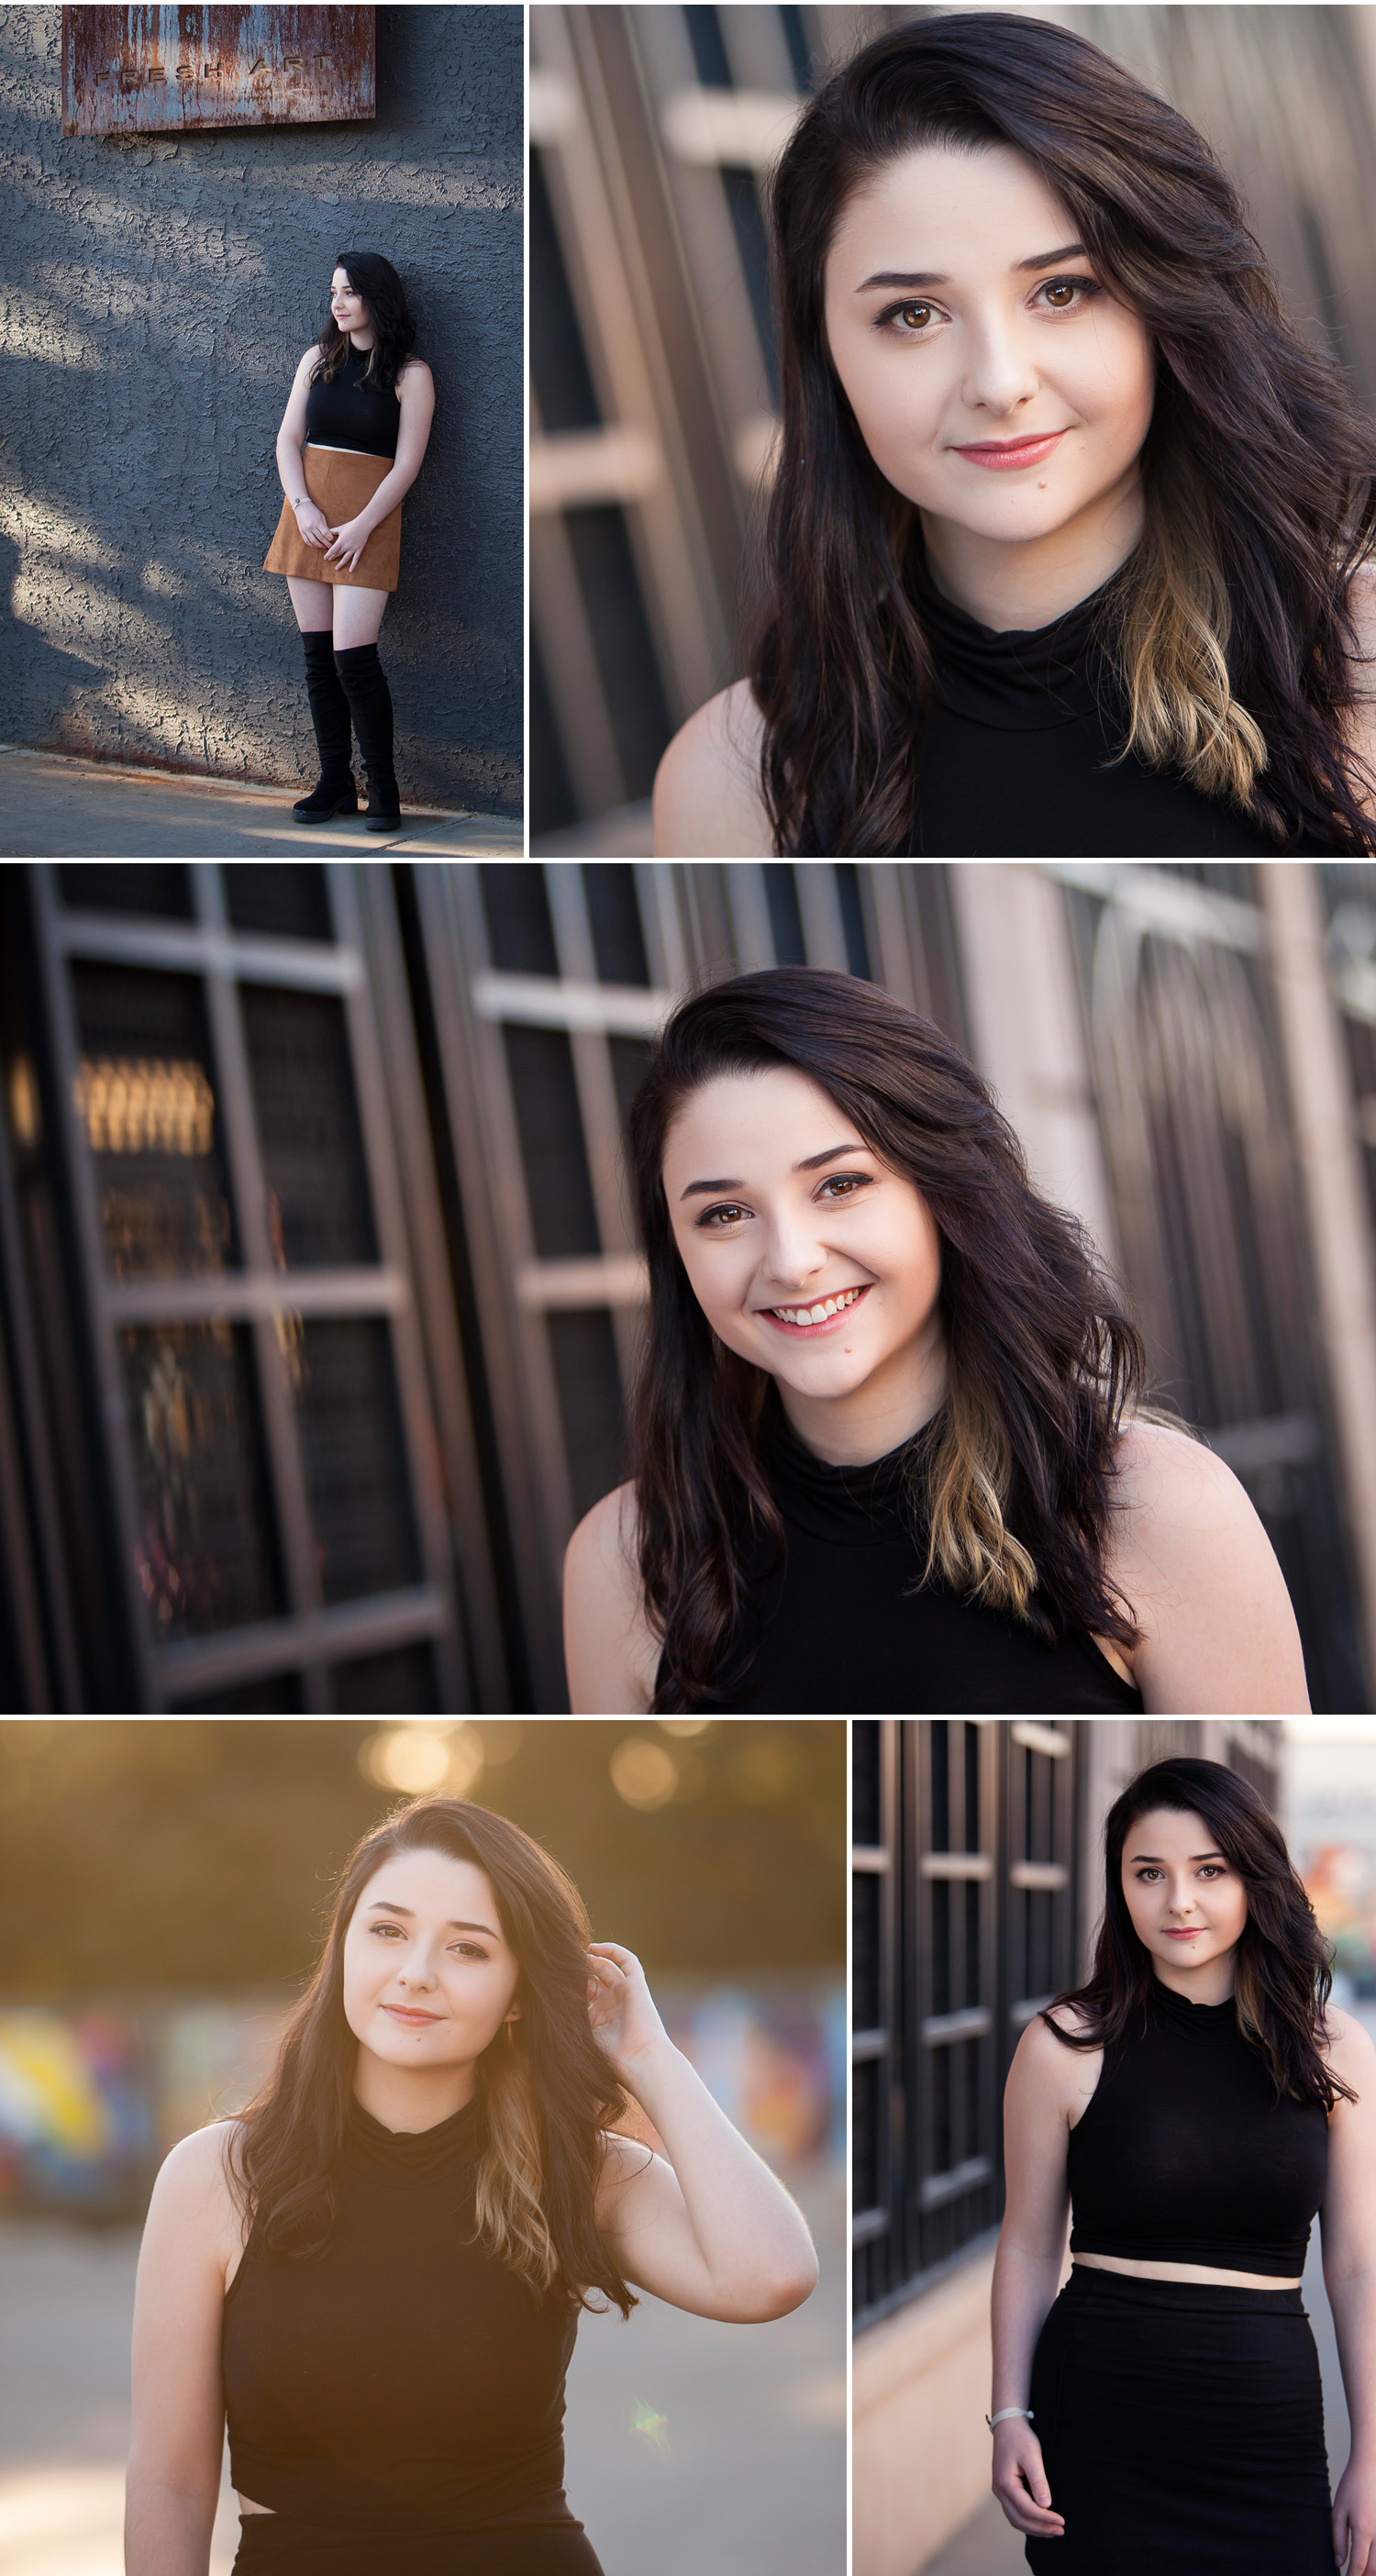 Senior Pictures in the hip, urban Santa Fe Arts District of Denver with photographer Jennifer Koskinen | Merritt Portrait Studio